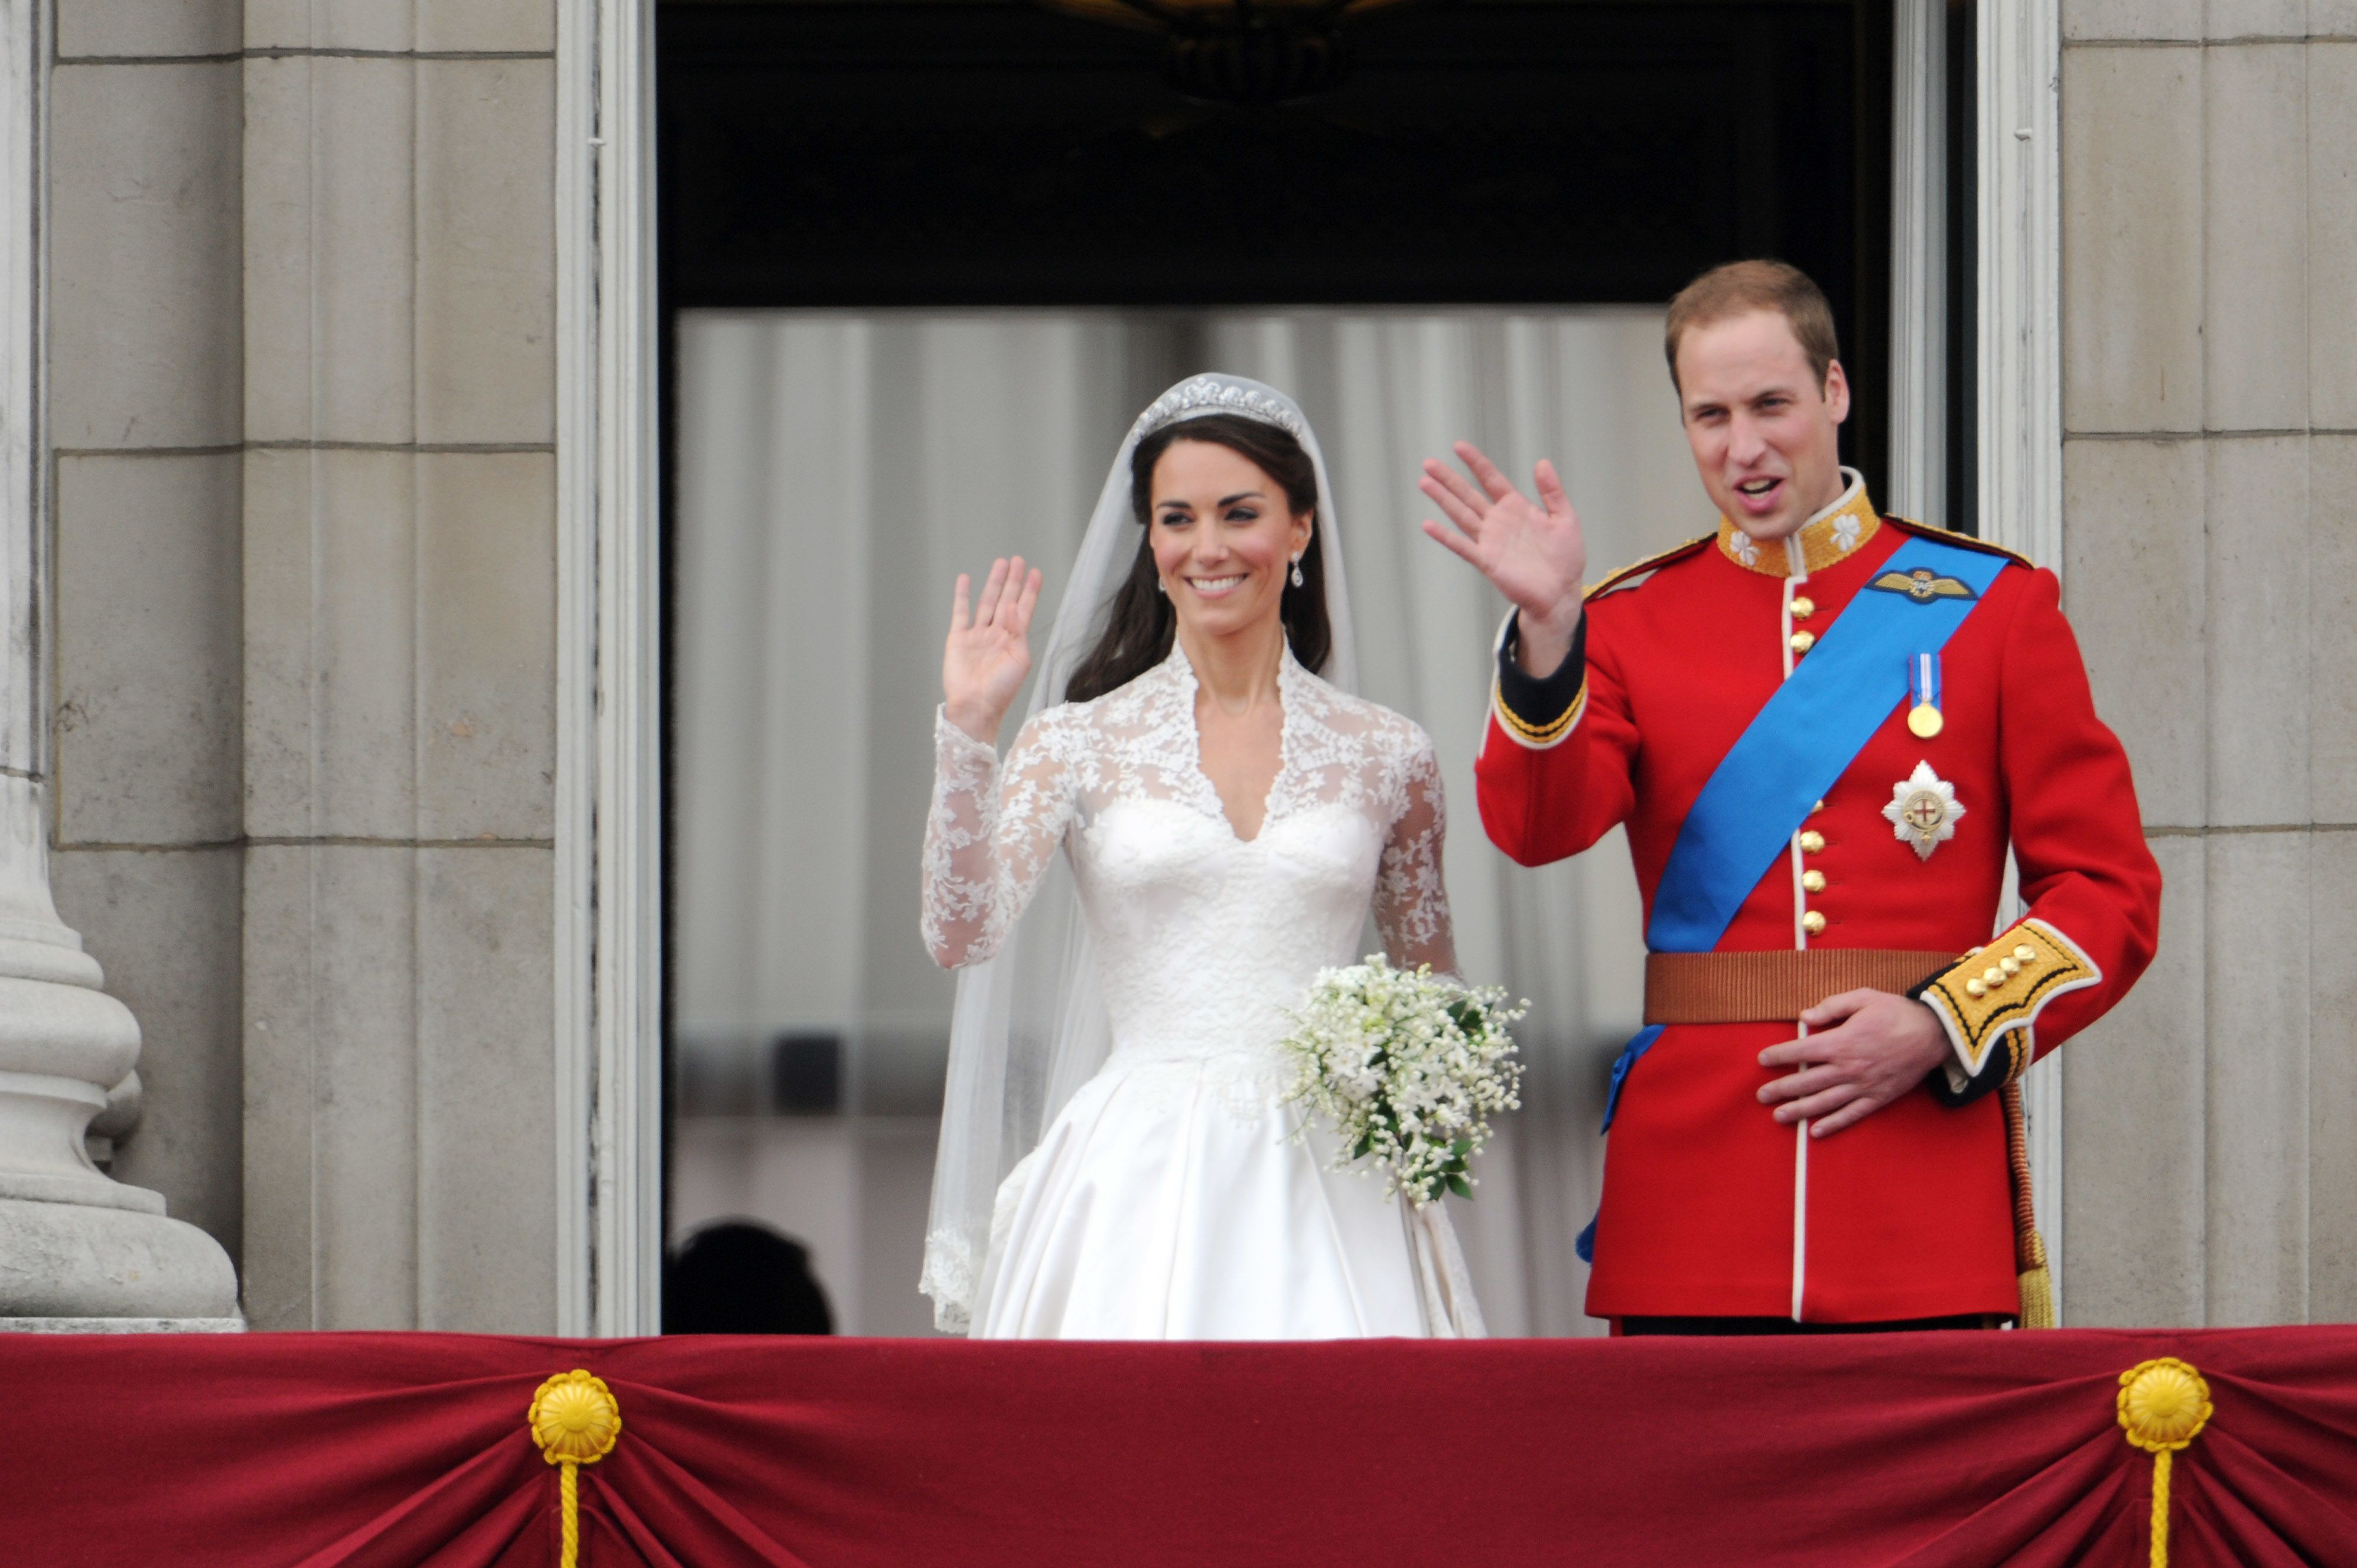 Prince William And Kate Middletons Wedding Photos